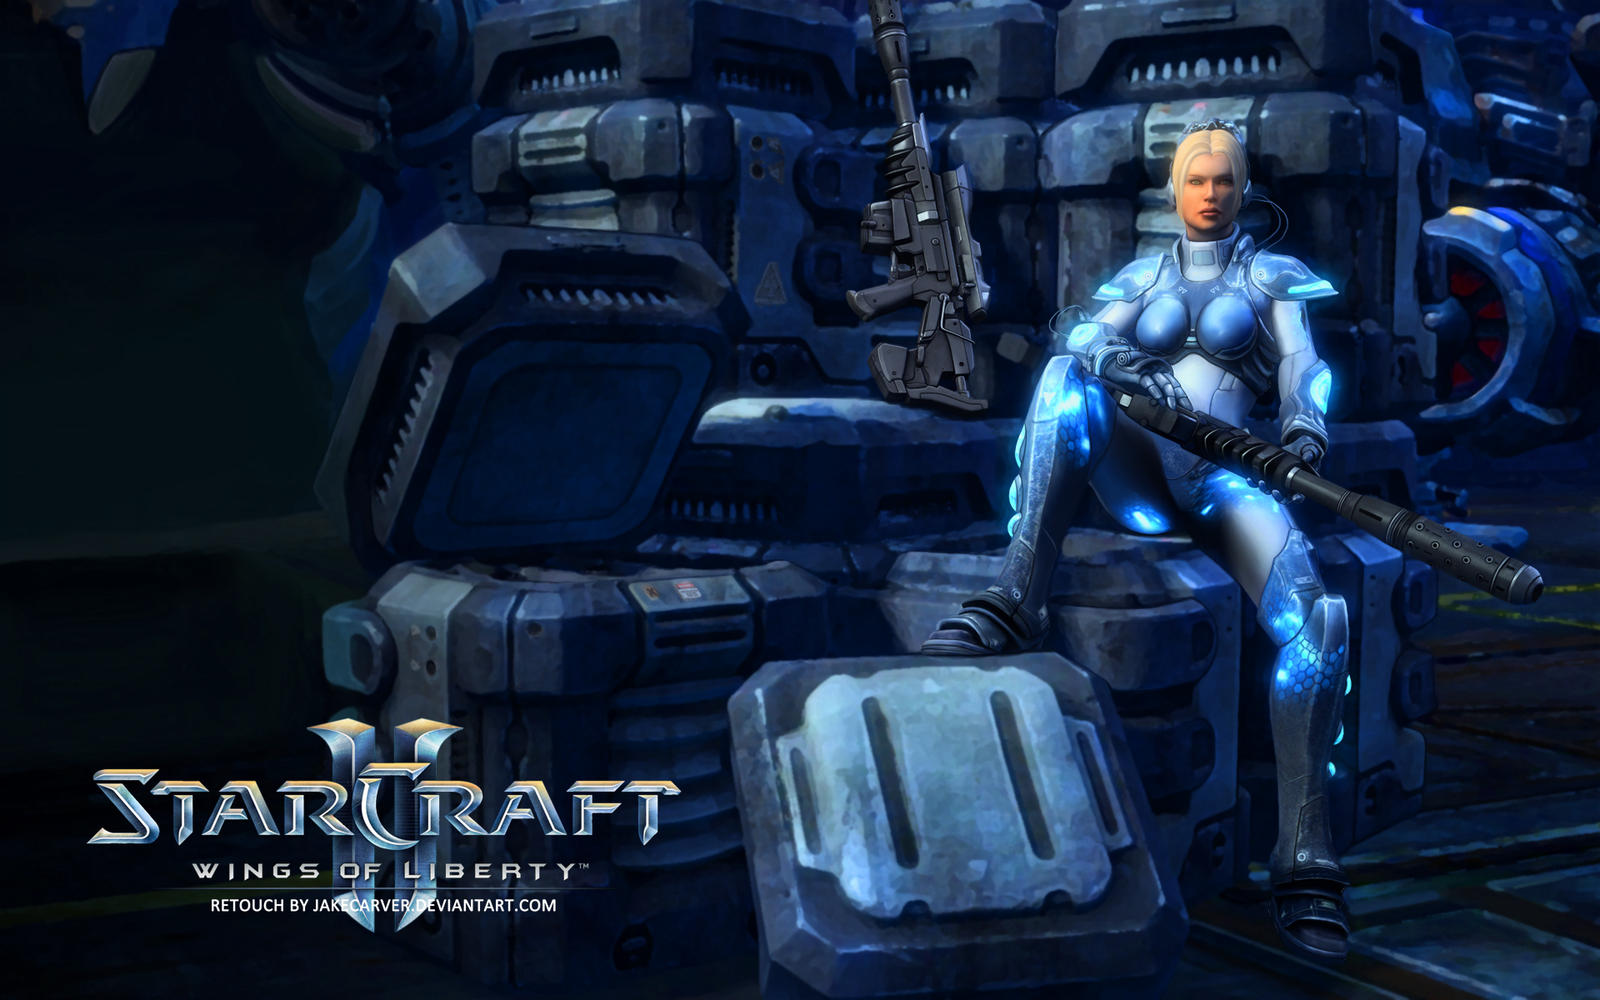 Nova. Starcraft 2: Wings of Liberty